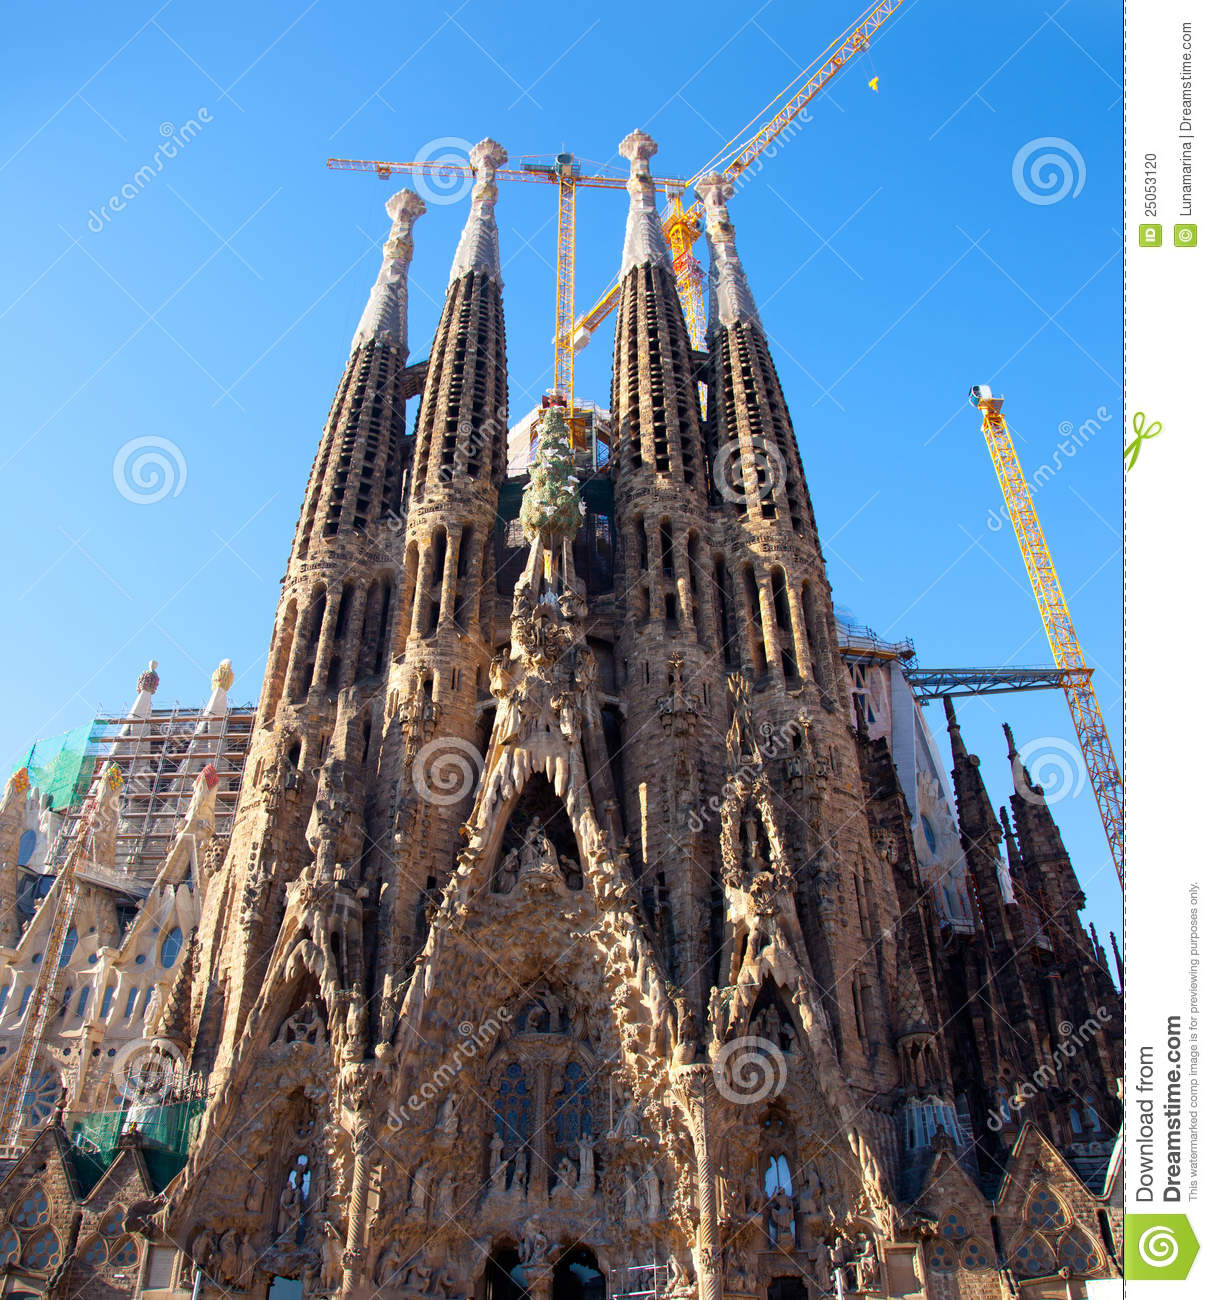 Barcelona Sagrada Familia Cathedral By Gaudi Editorial Image - Image: 25053120